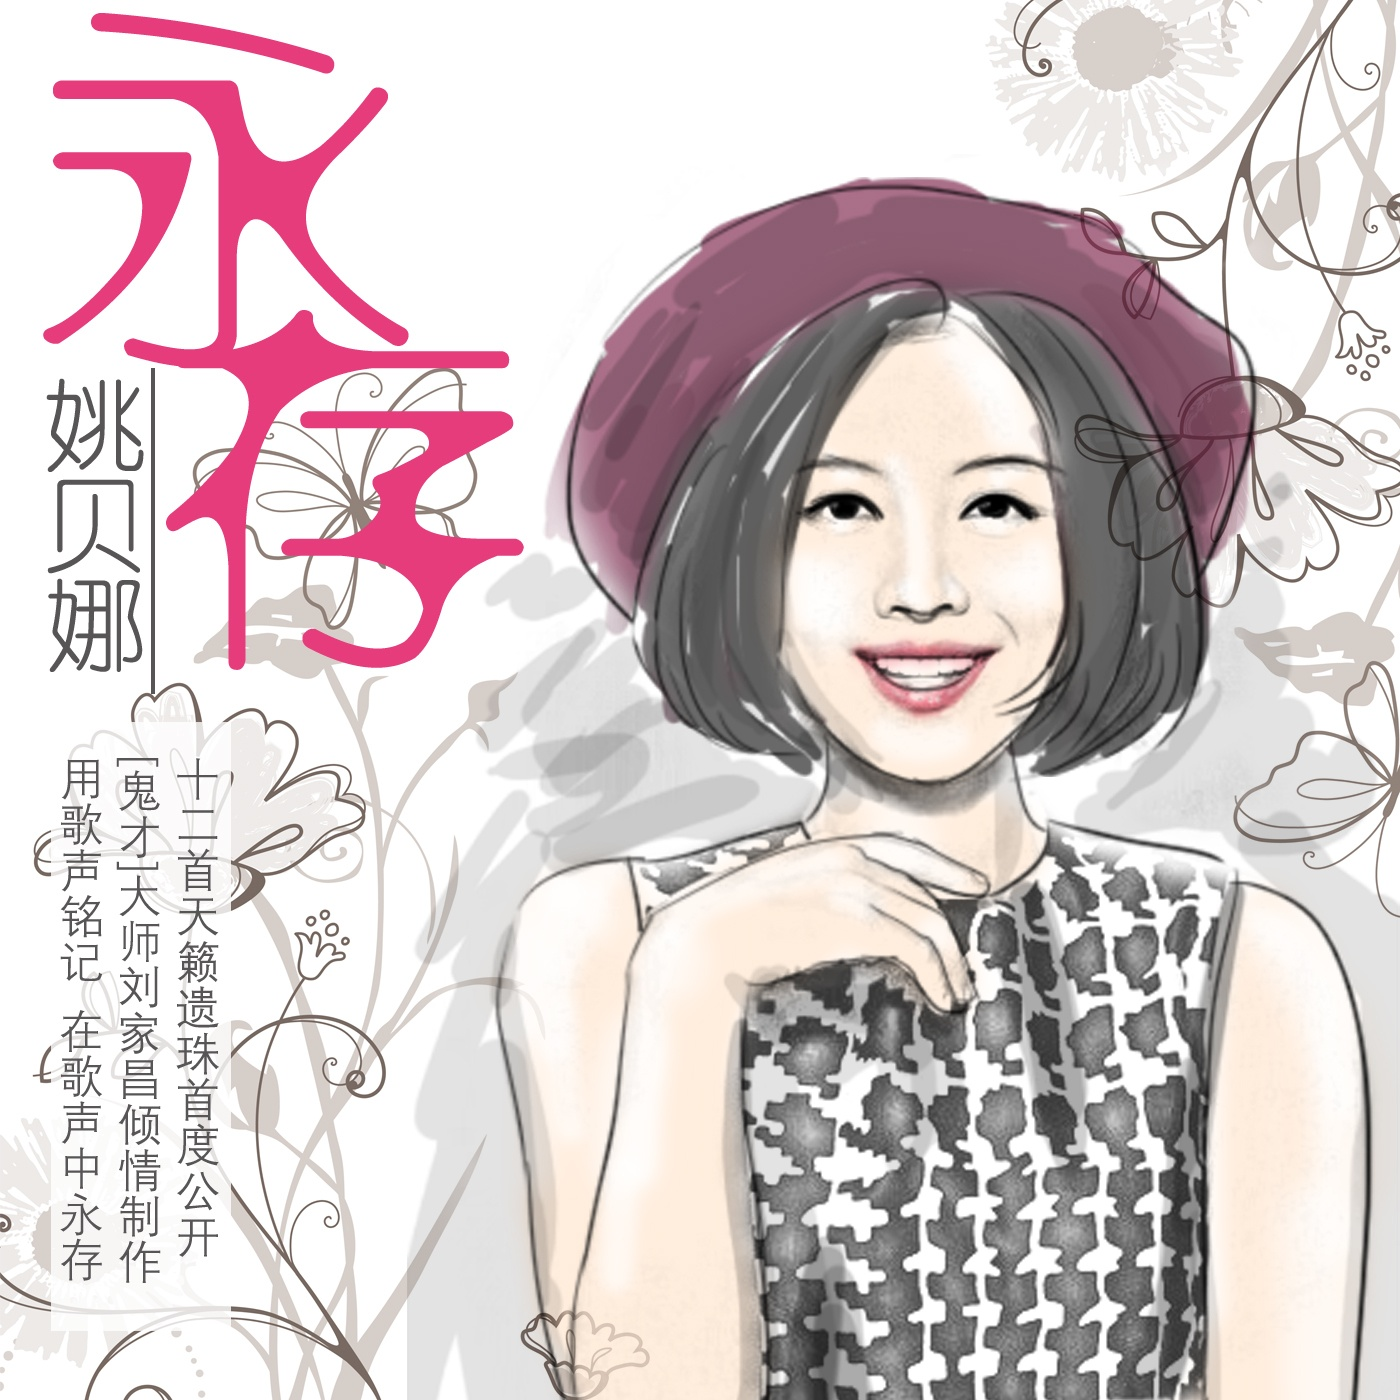 [Album] 永存 - 姚貝娜 Bella Yao (mp3)